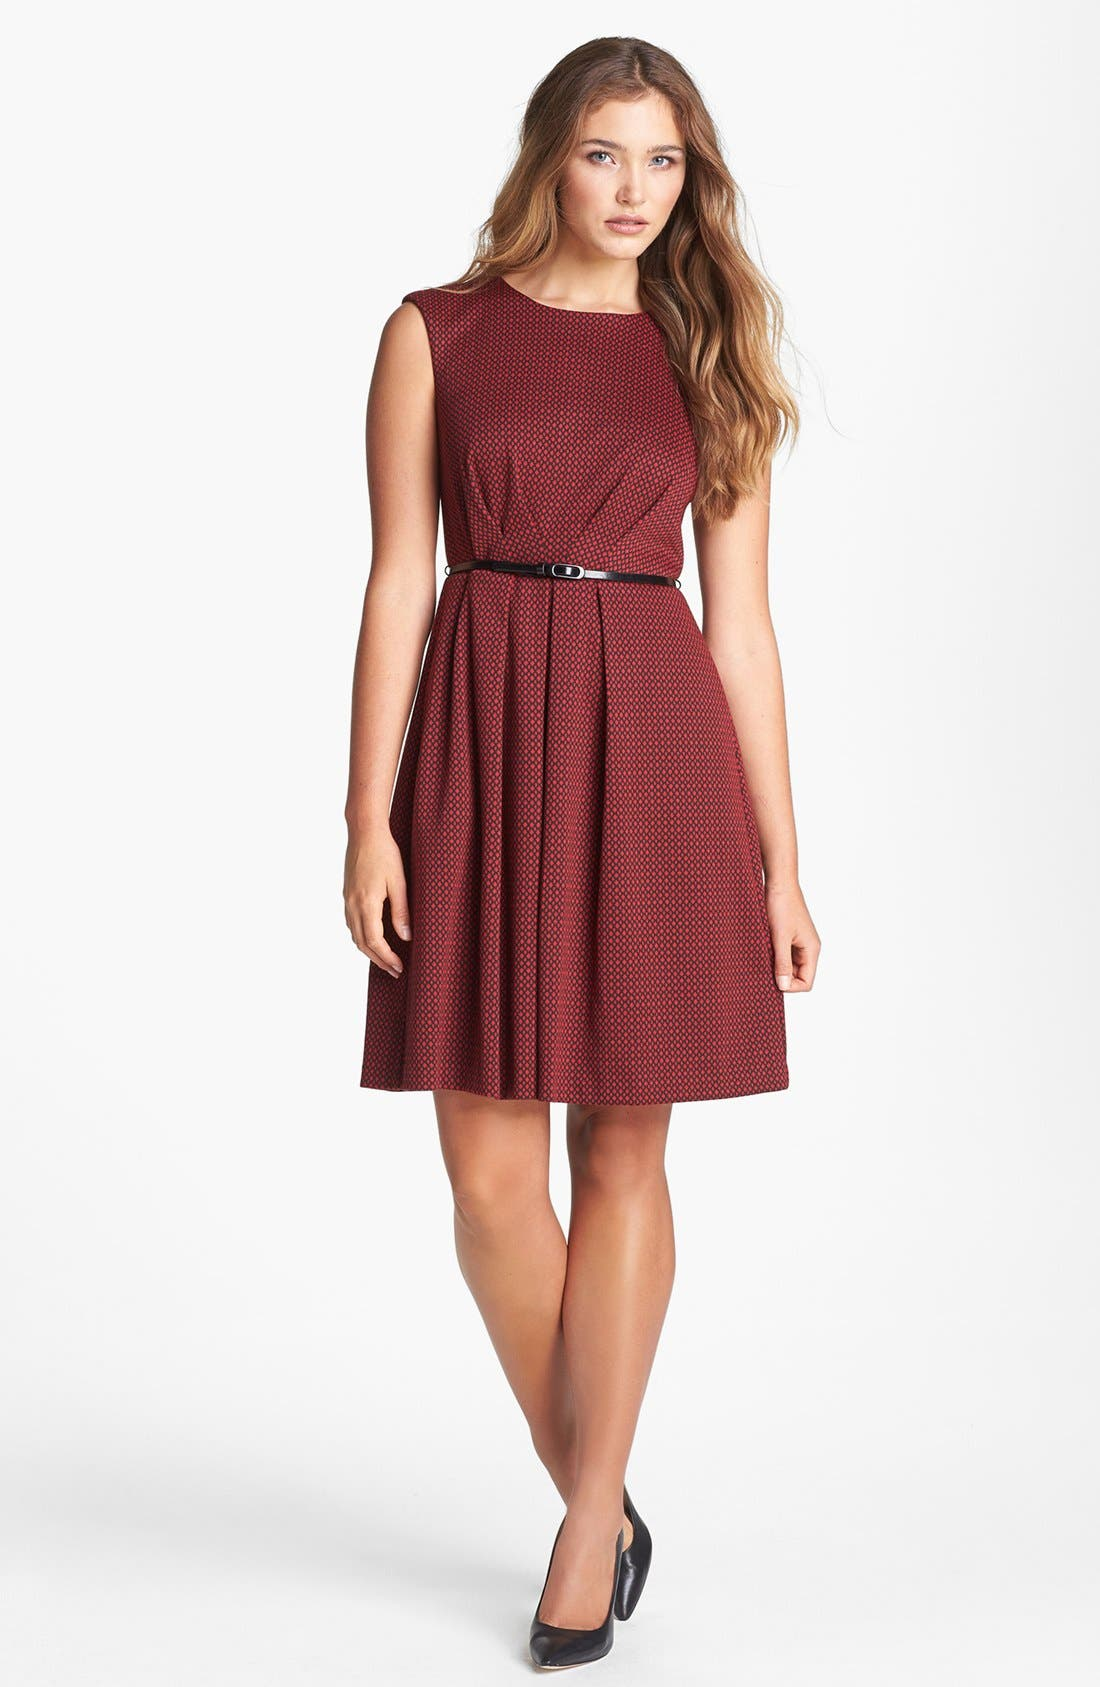 Alternate Image 1 Selected - Maggy London Patterned Fit & Flare Dress